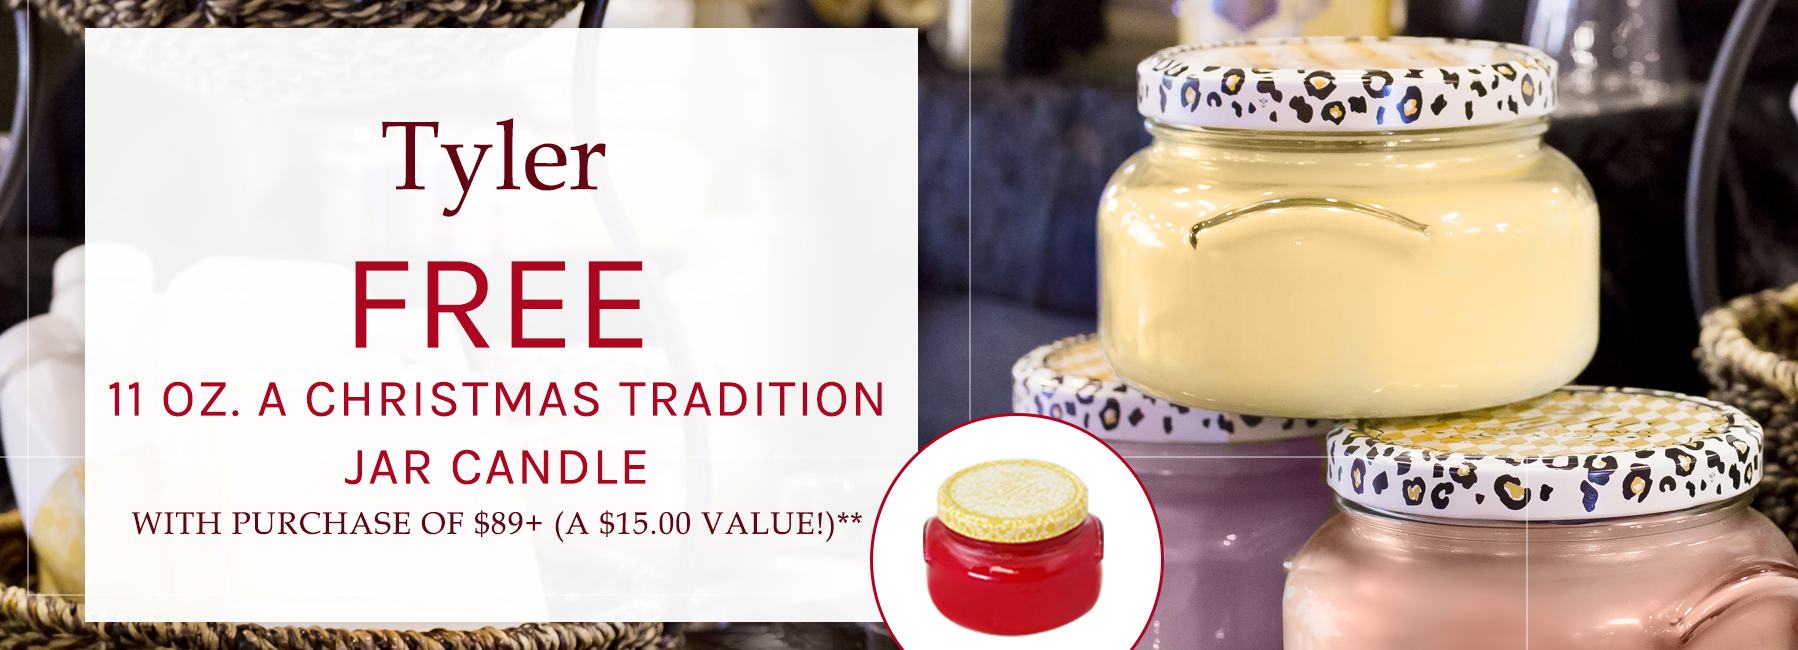 Tyler - FREE 11 Ounces A Christmas Tradition Jar Candle with Purchase of $89+ - A $15.00 Value**